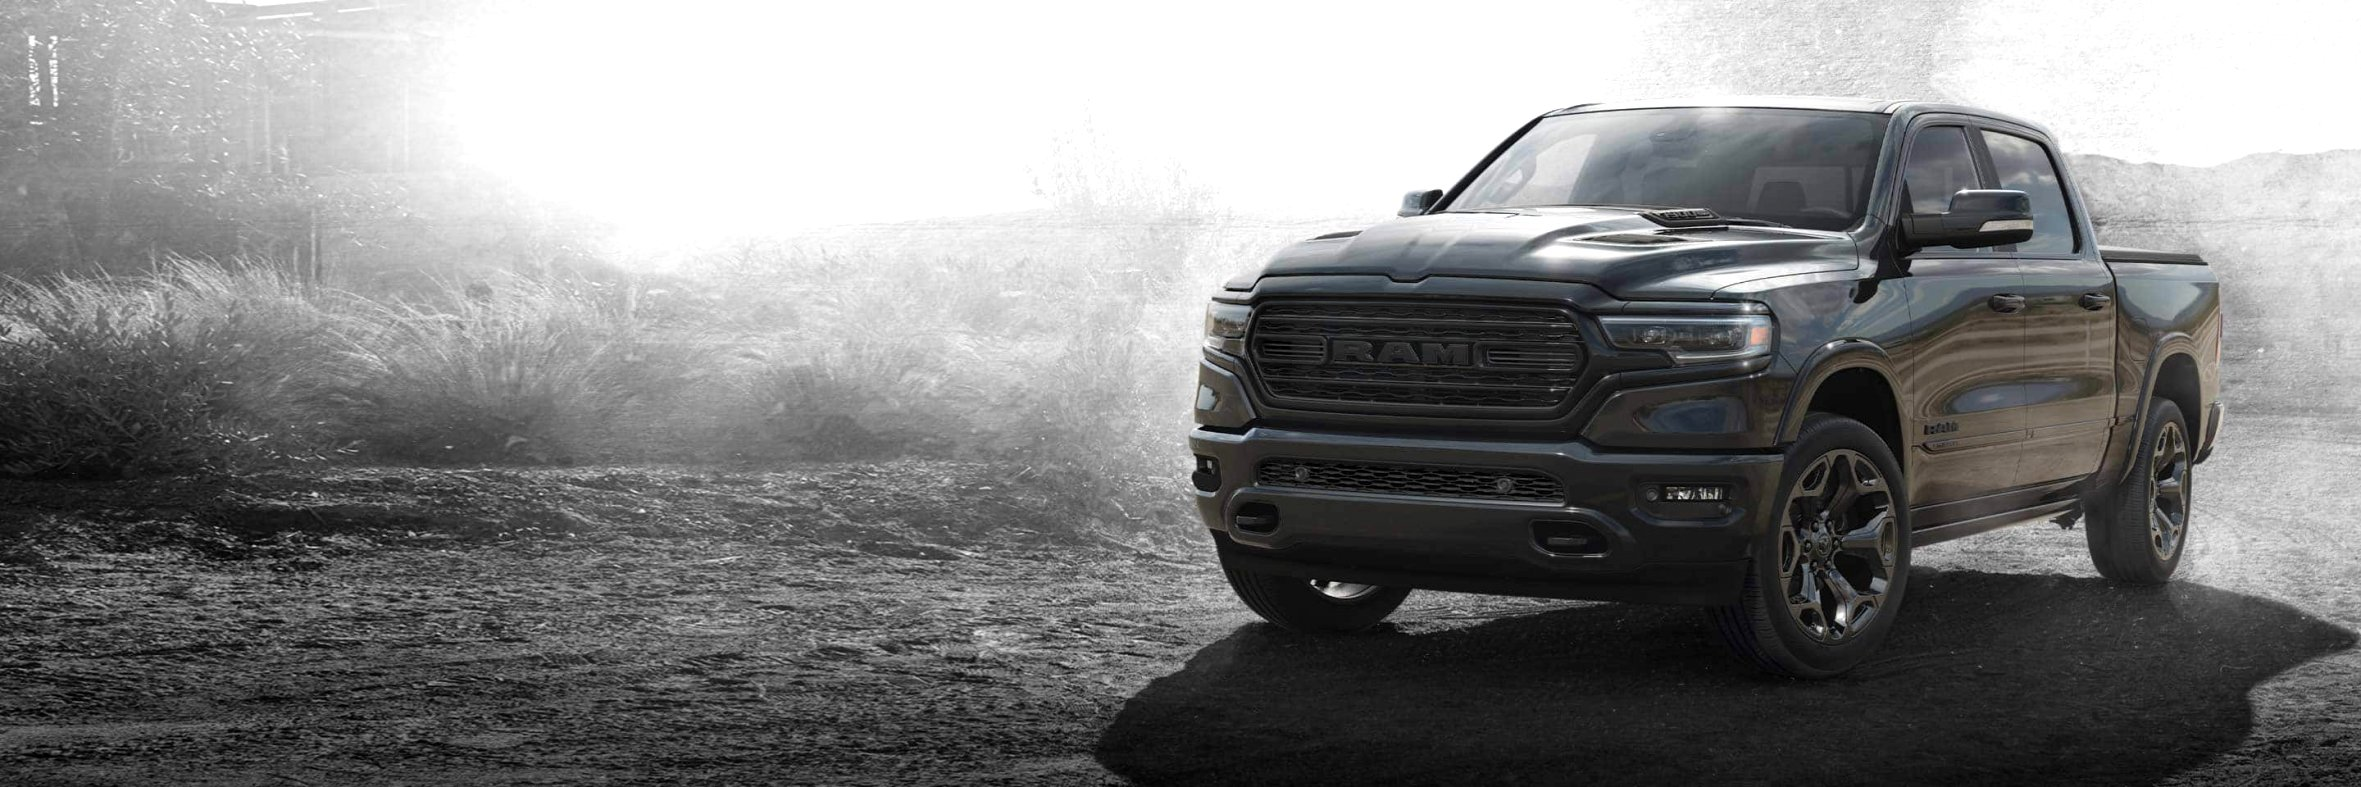 2020 dodge limited New Model and Performance